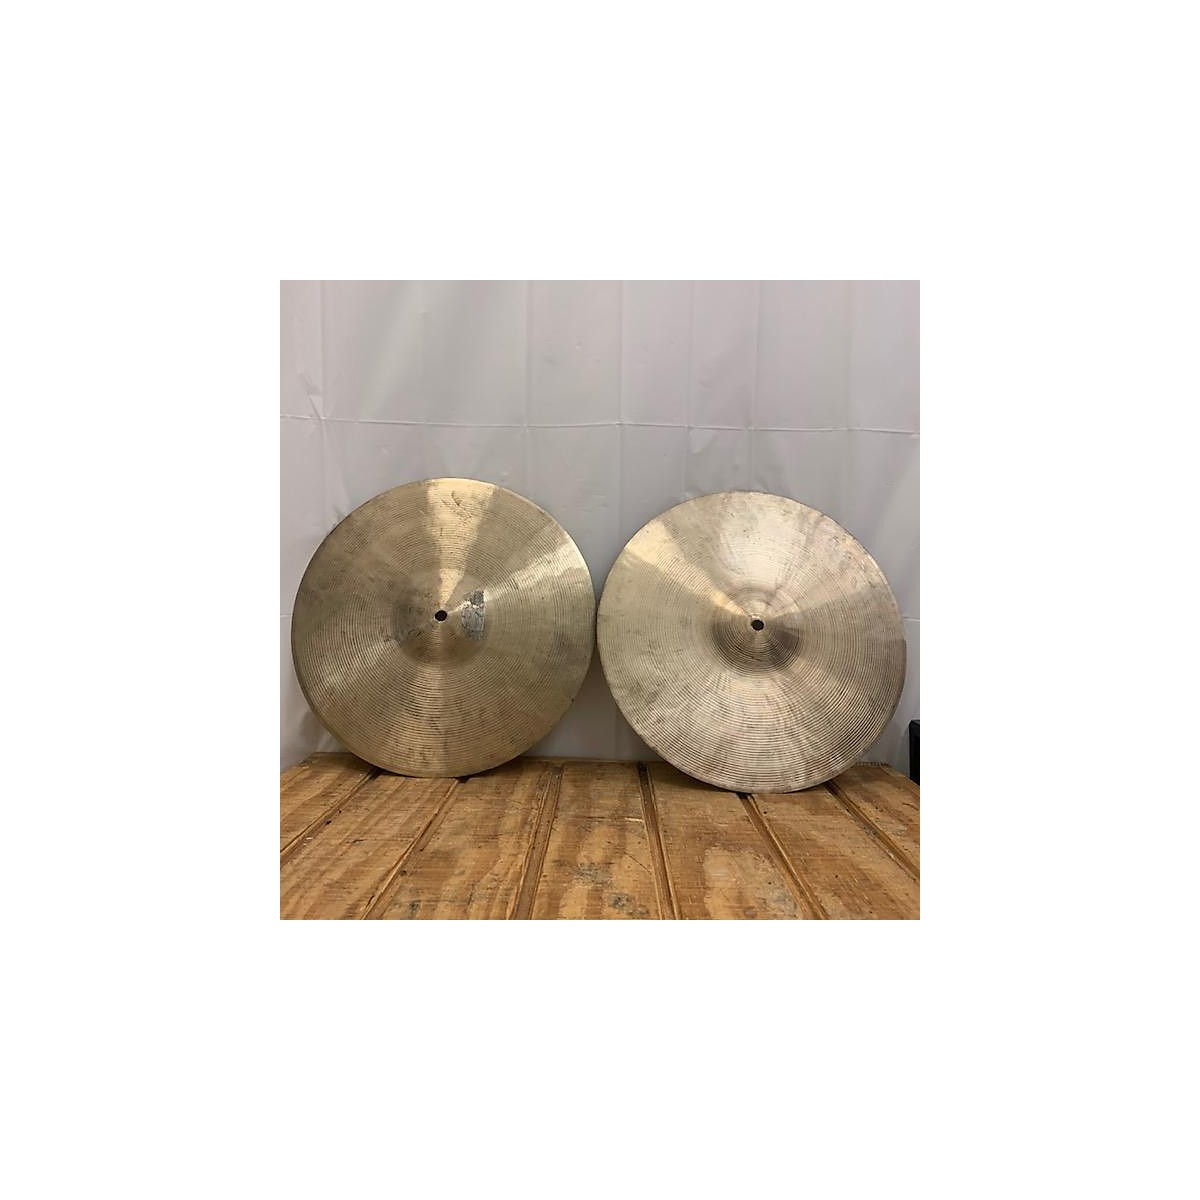 Miscellaneous 14in High Hat Pair Cymbal